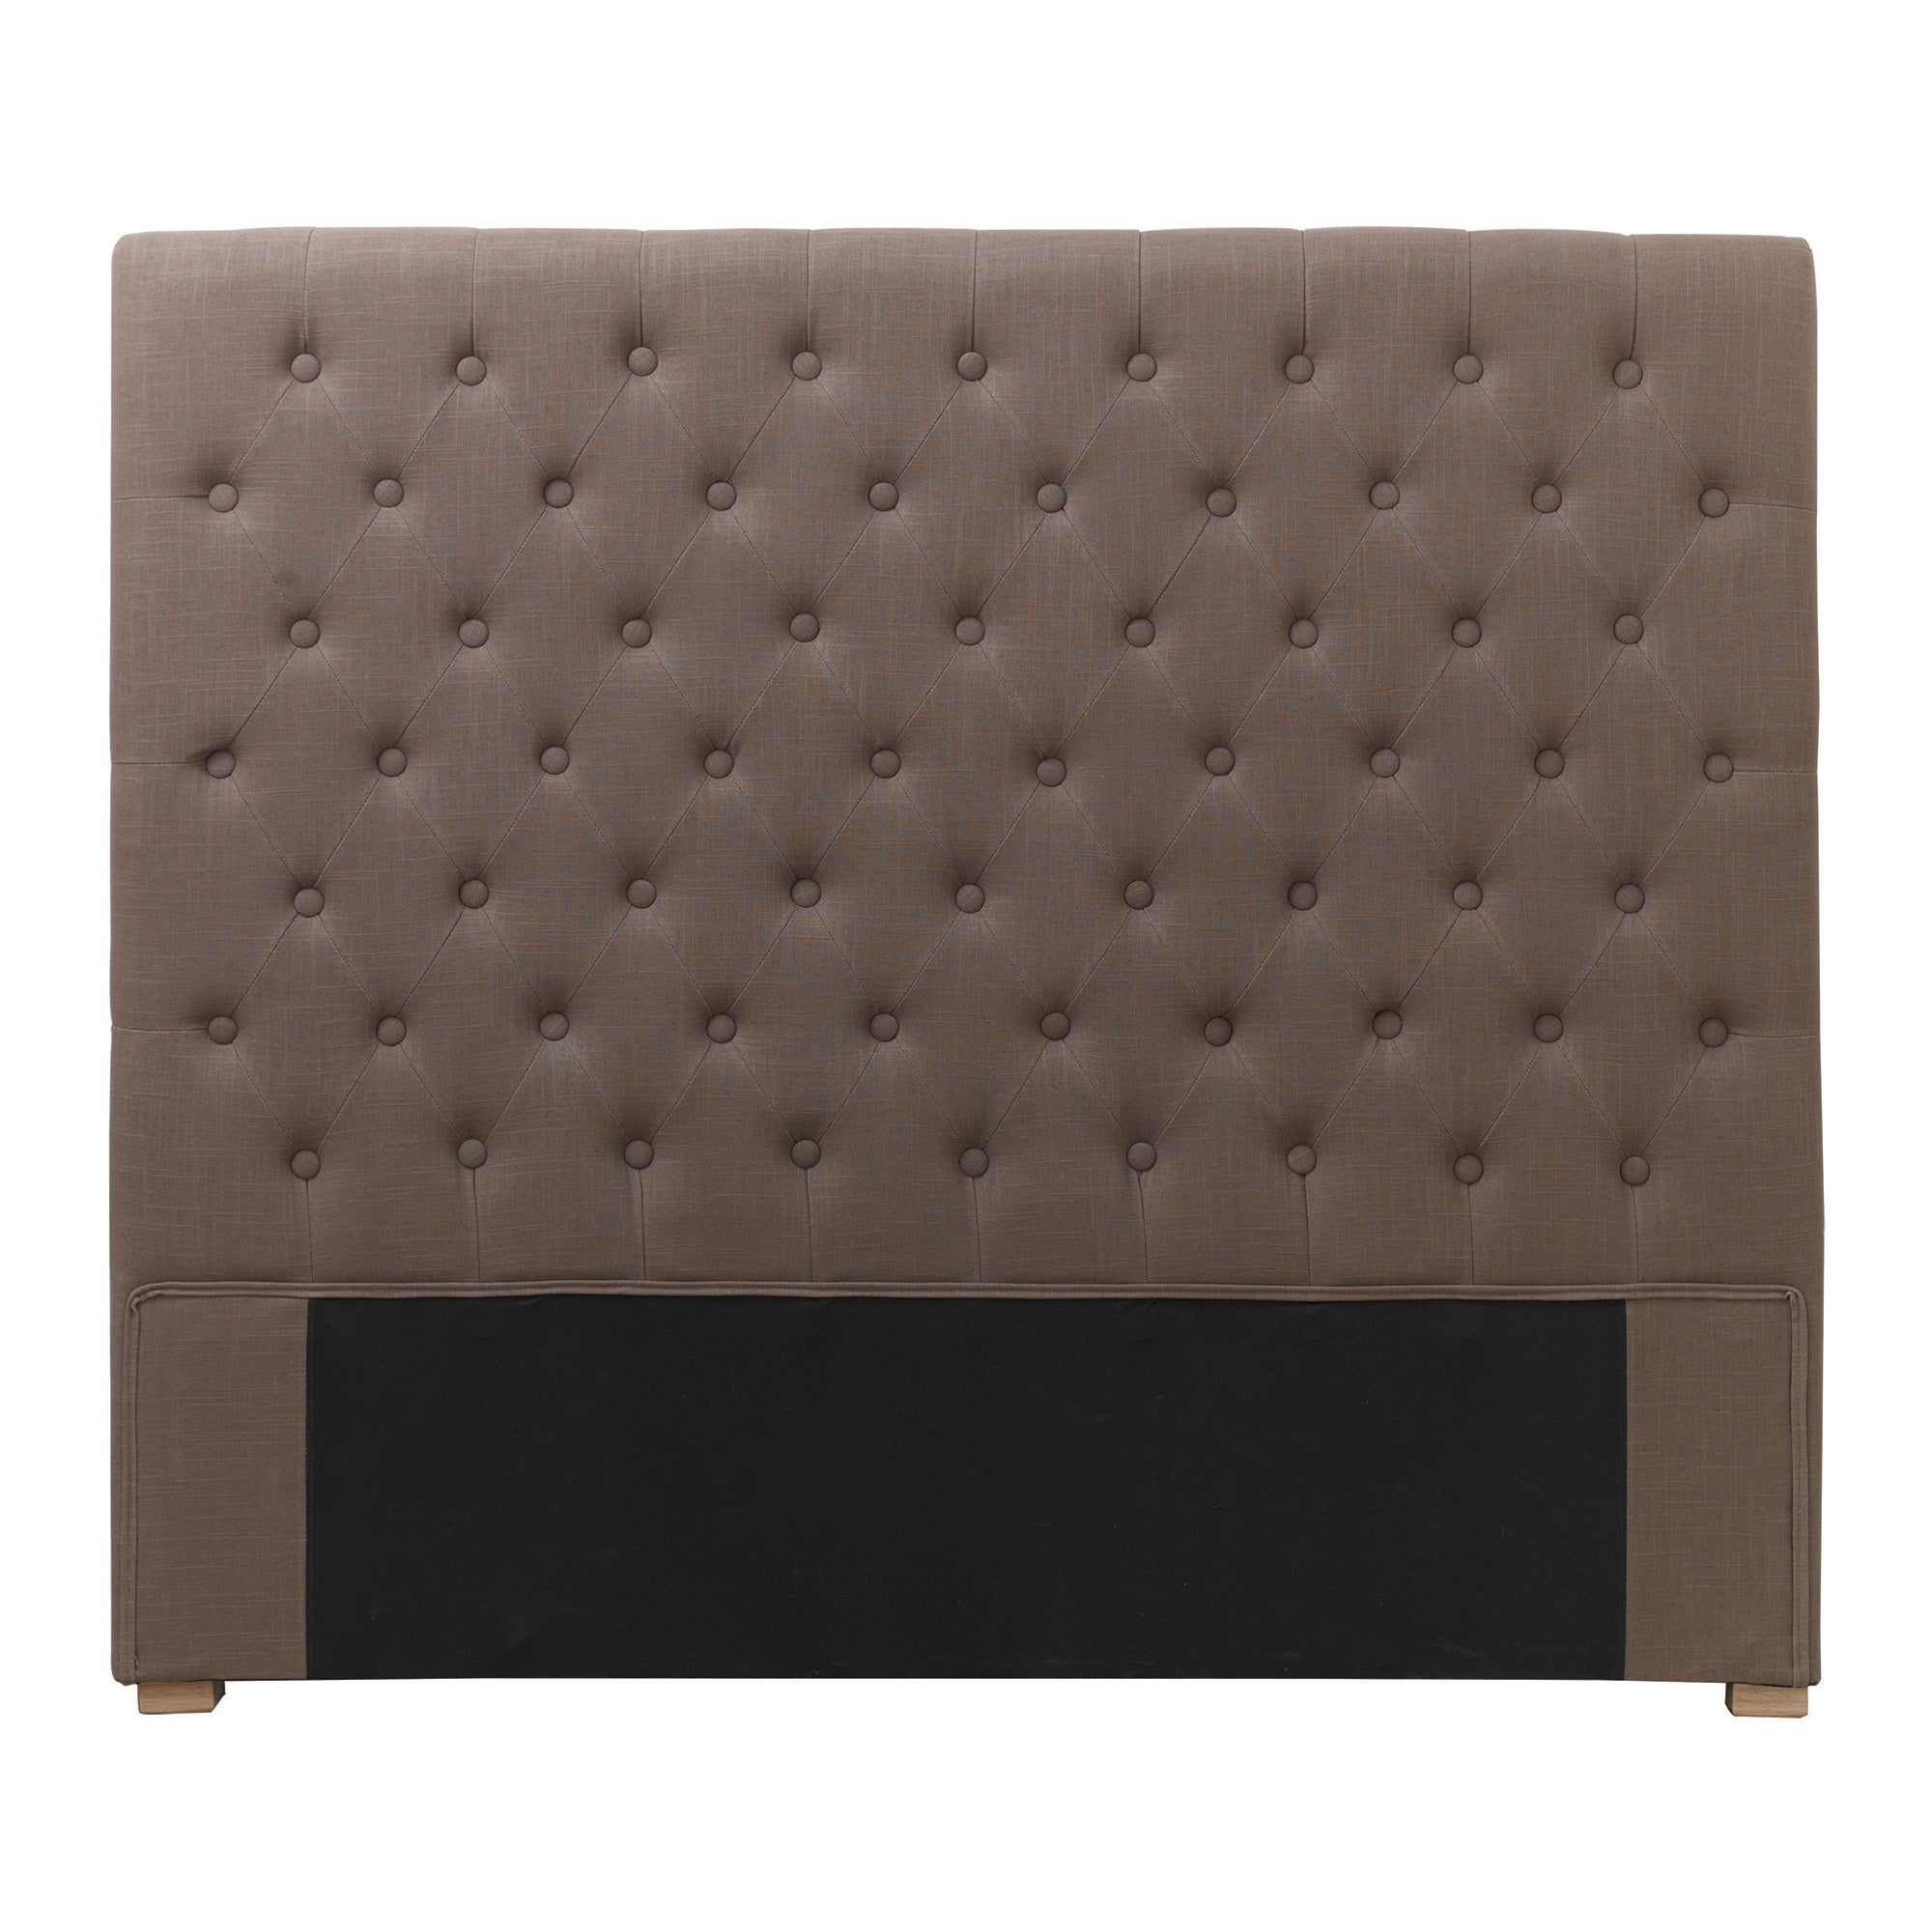 Mink Collette Headboard